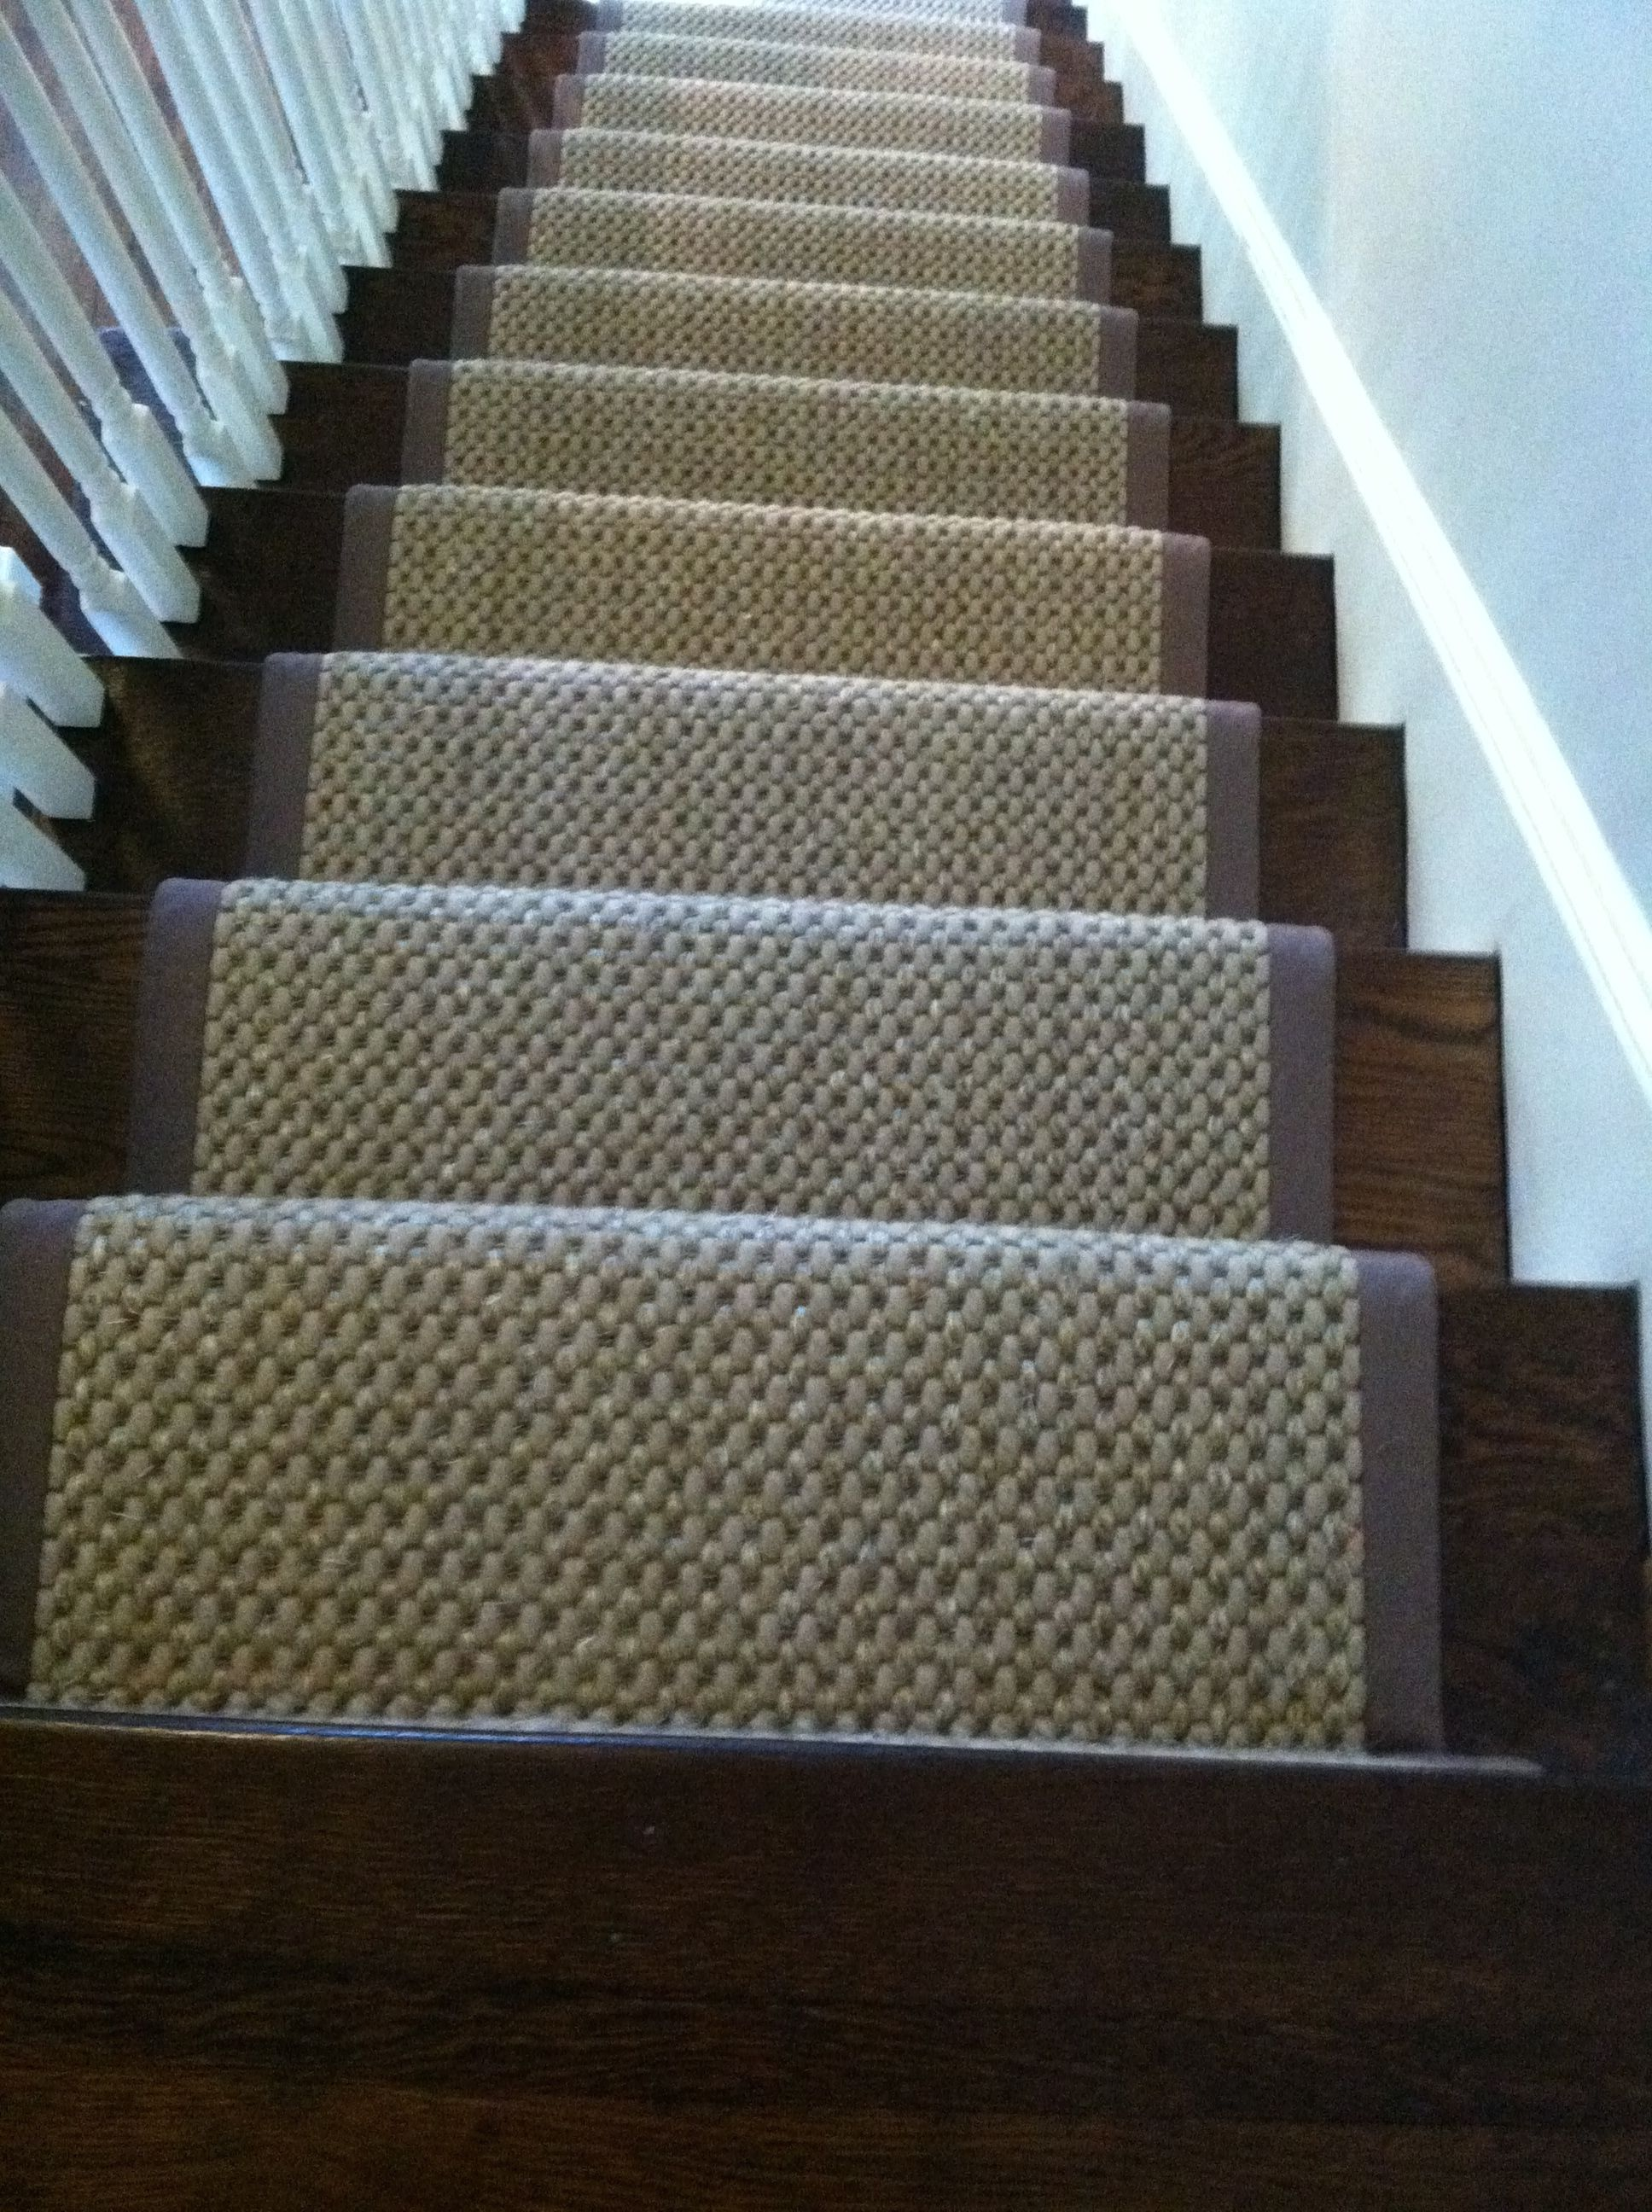 This #sisal Carpet Remnant Was Fabricated And Installed As A Stair Runner  By The Carpet Workroom #sisal_stair_runner